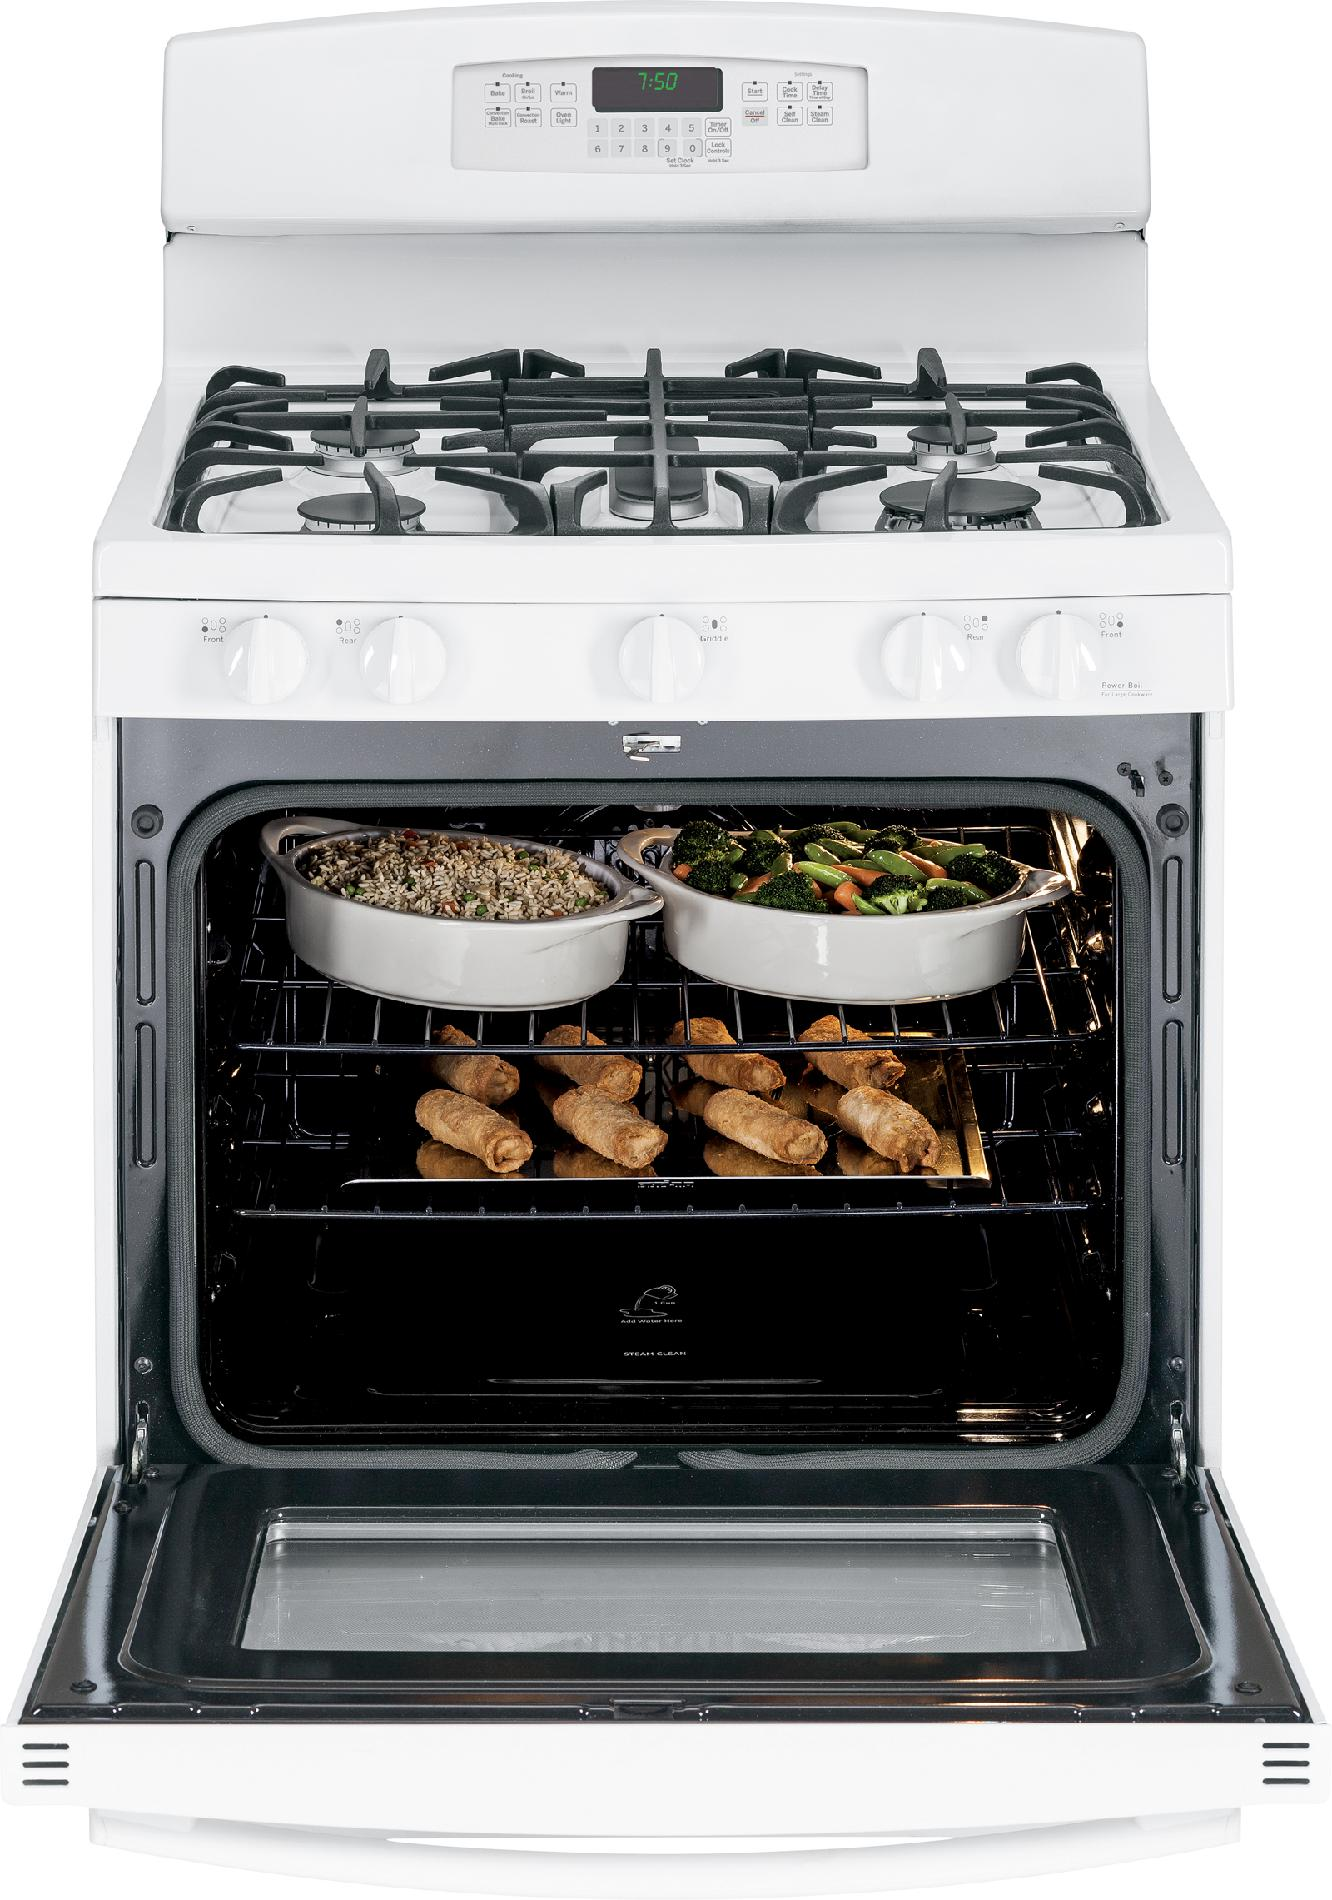 GE Appliances 5.6 cu. ft. Gas Range w/ Convection - White